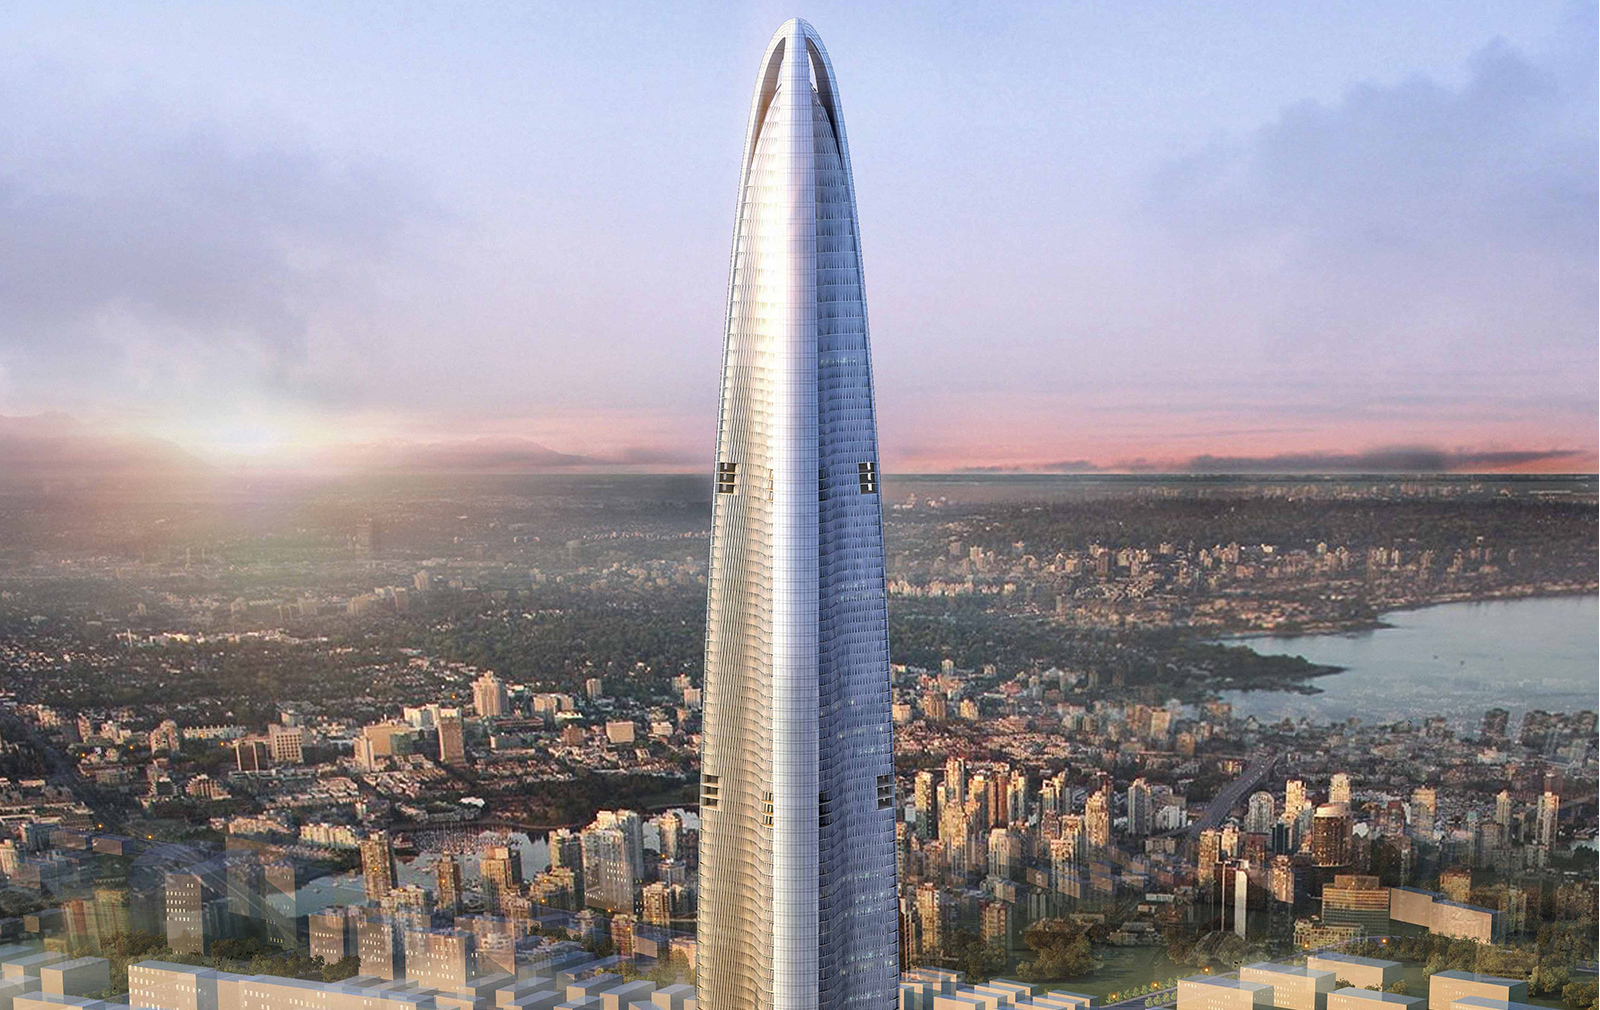 Tallest buildings topping out in 2017 - Wuhan Greenland Center